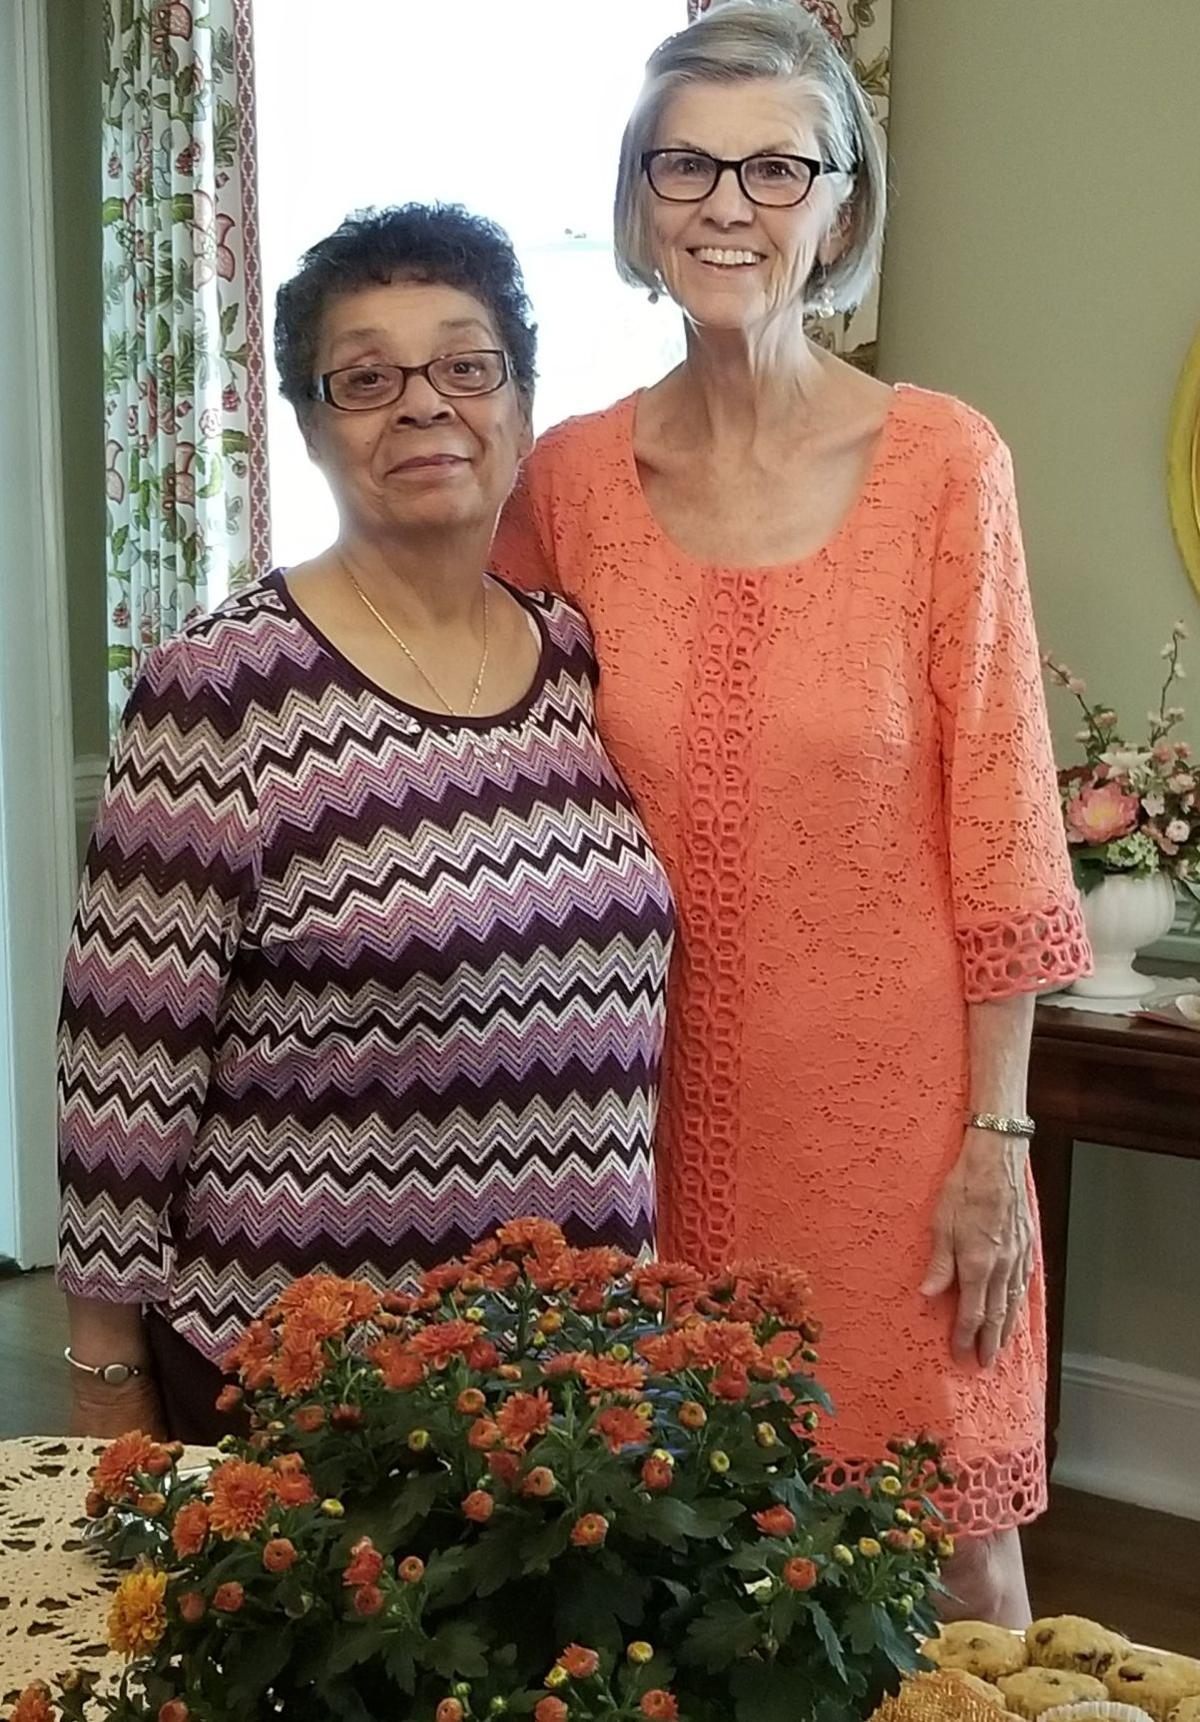 Woman's Club of Elizabethtown members gather for September meeting